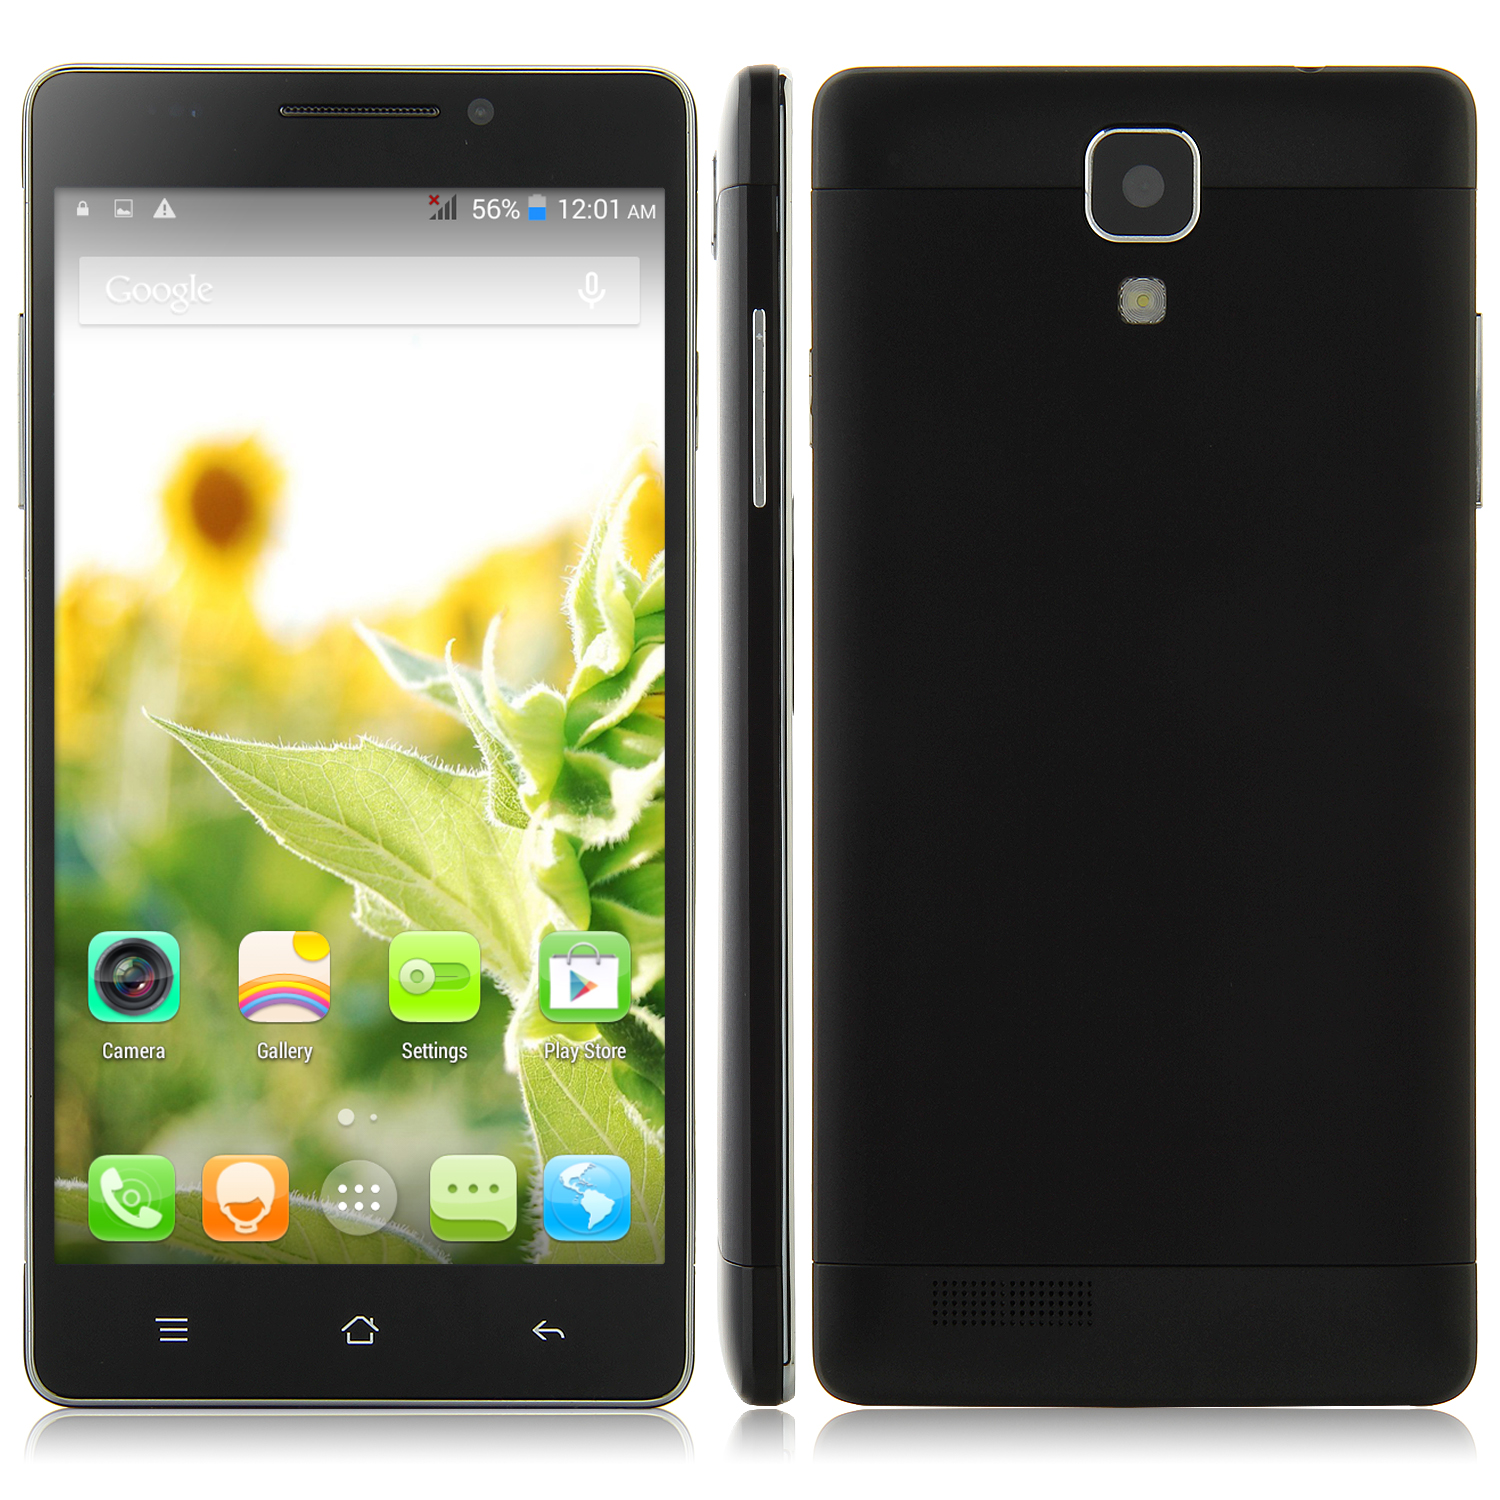 M7 Smartphone Android 4.4 MTK6582 Quad Core 1GB 8GB 5.5 Inch QHD Screen Black